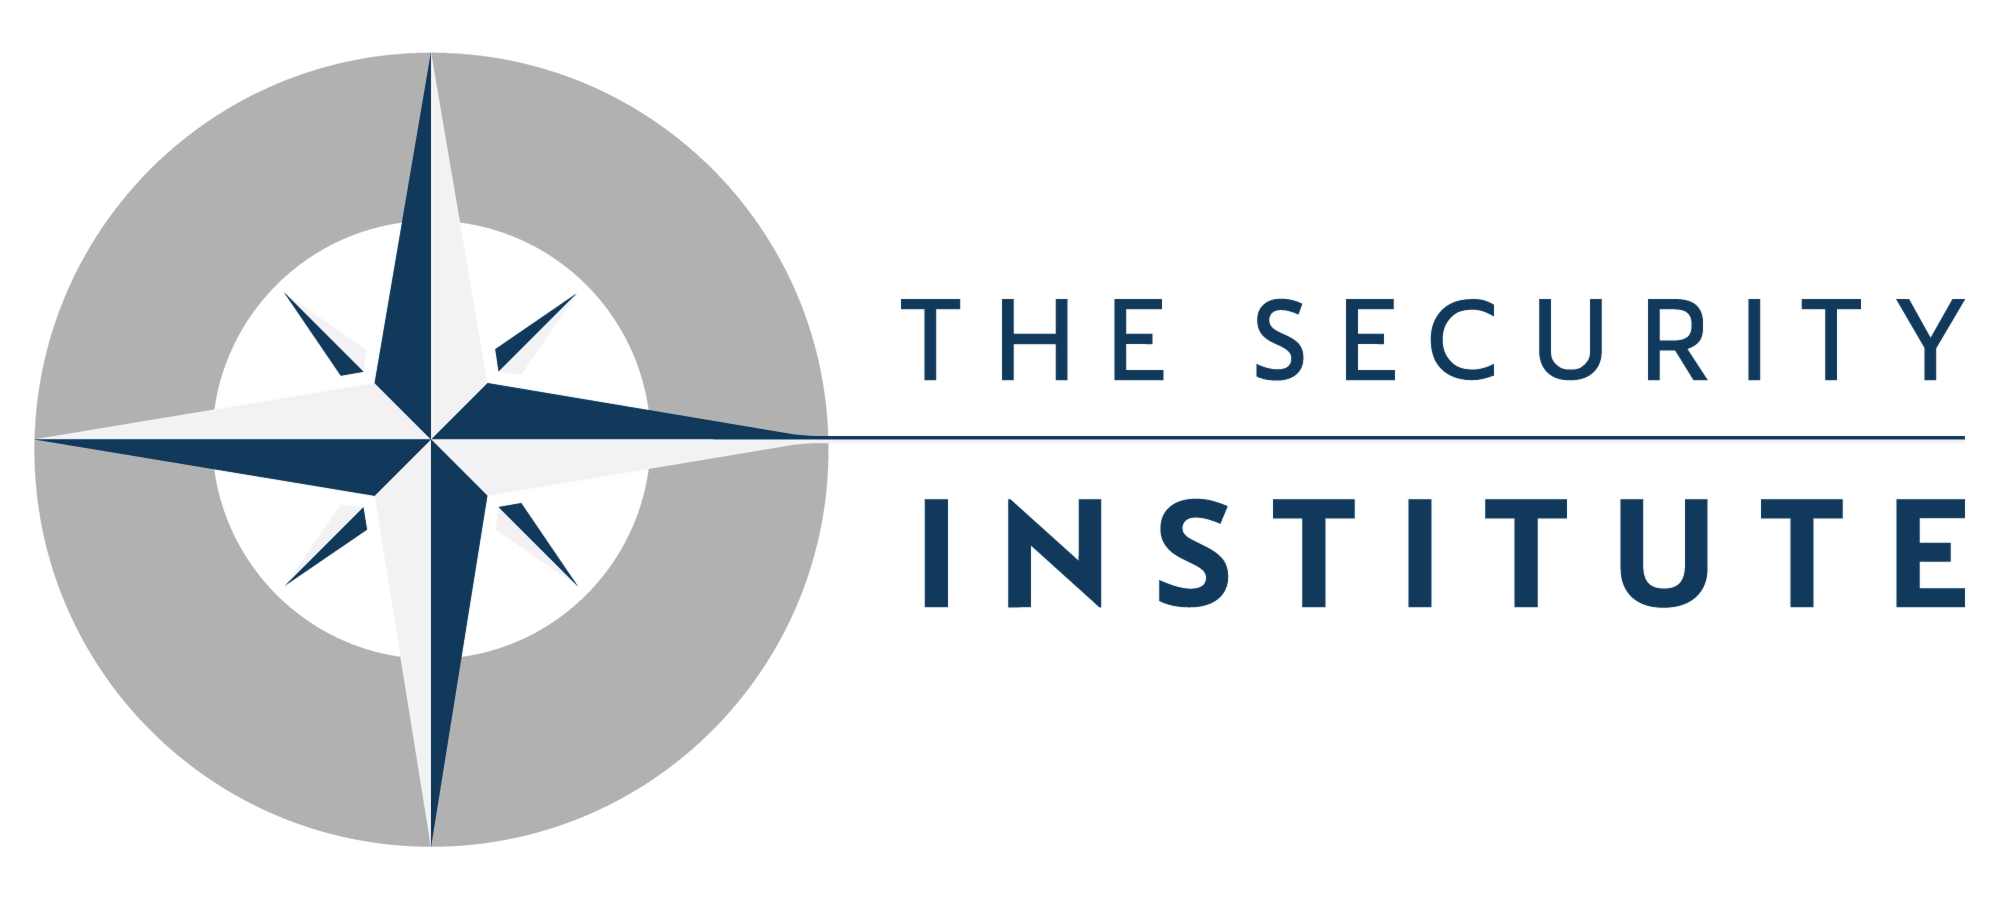 The Security Institute